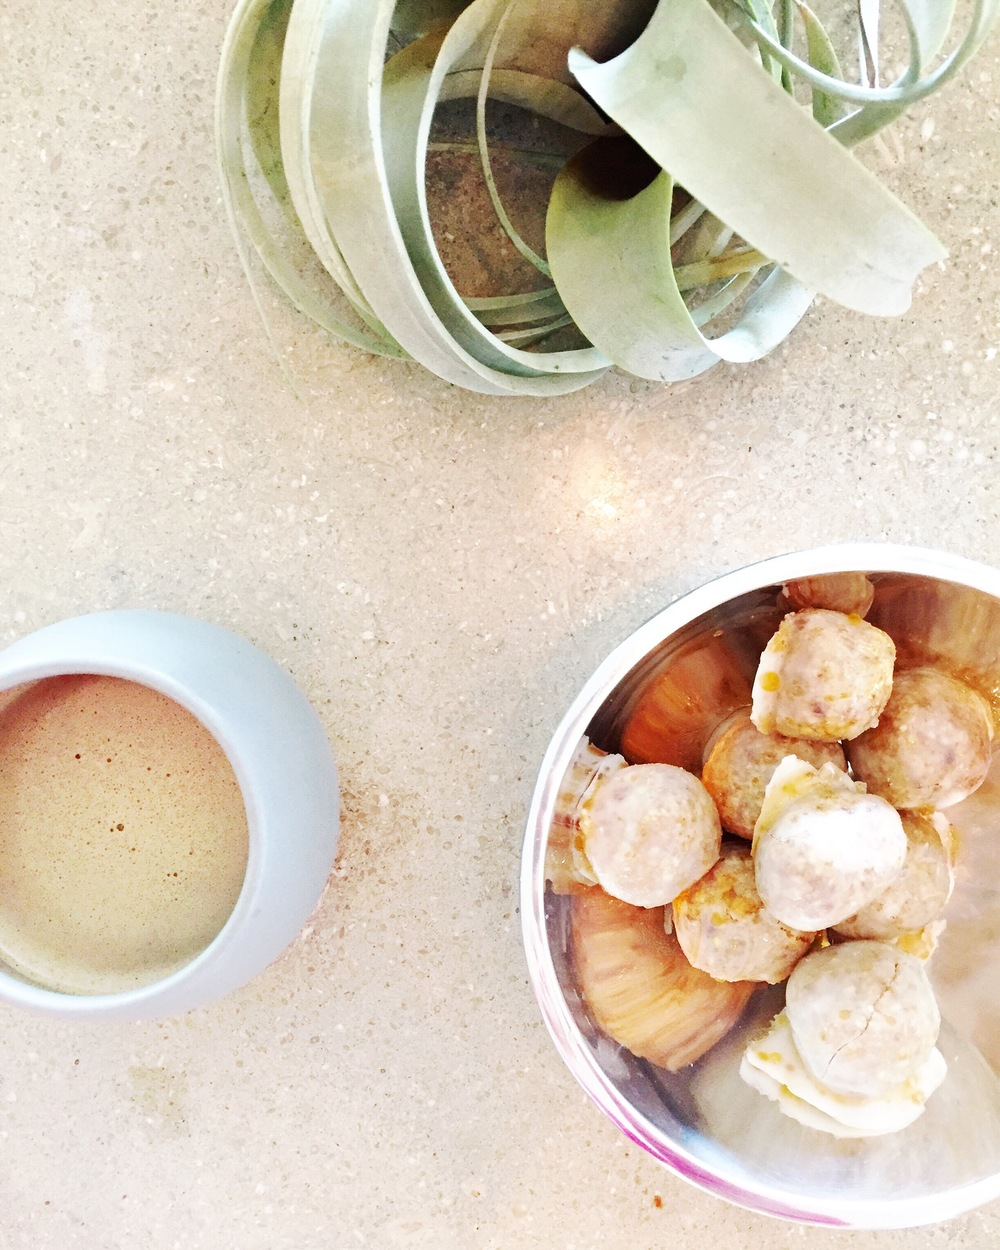 superfood coffee and superfood donuts. next level fire.